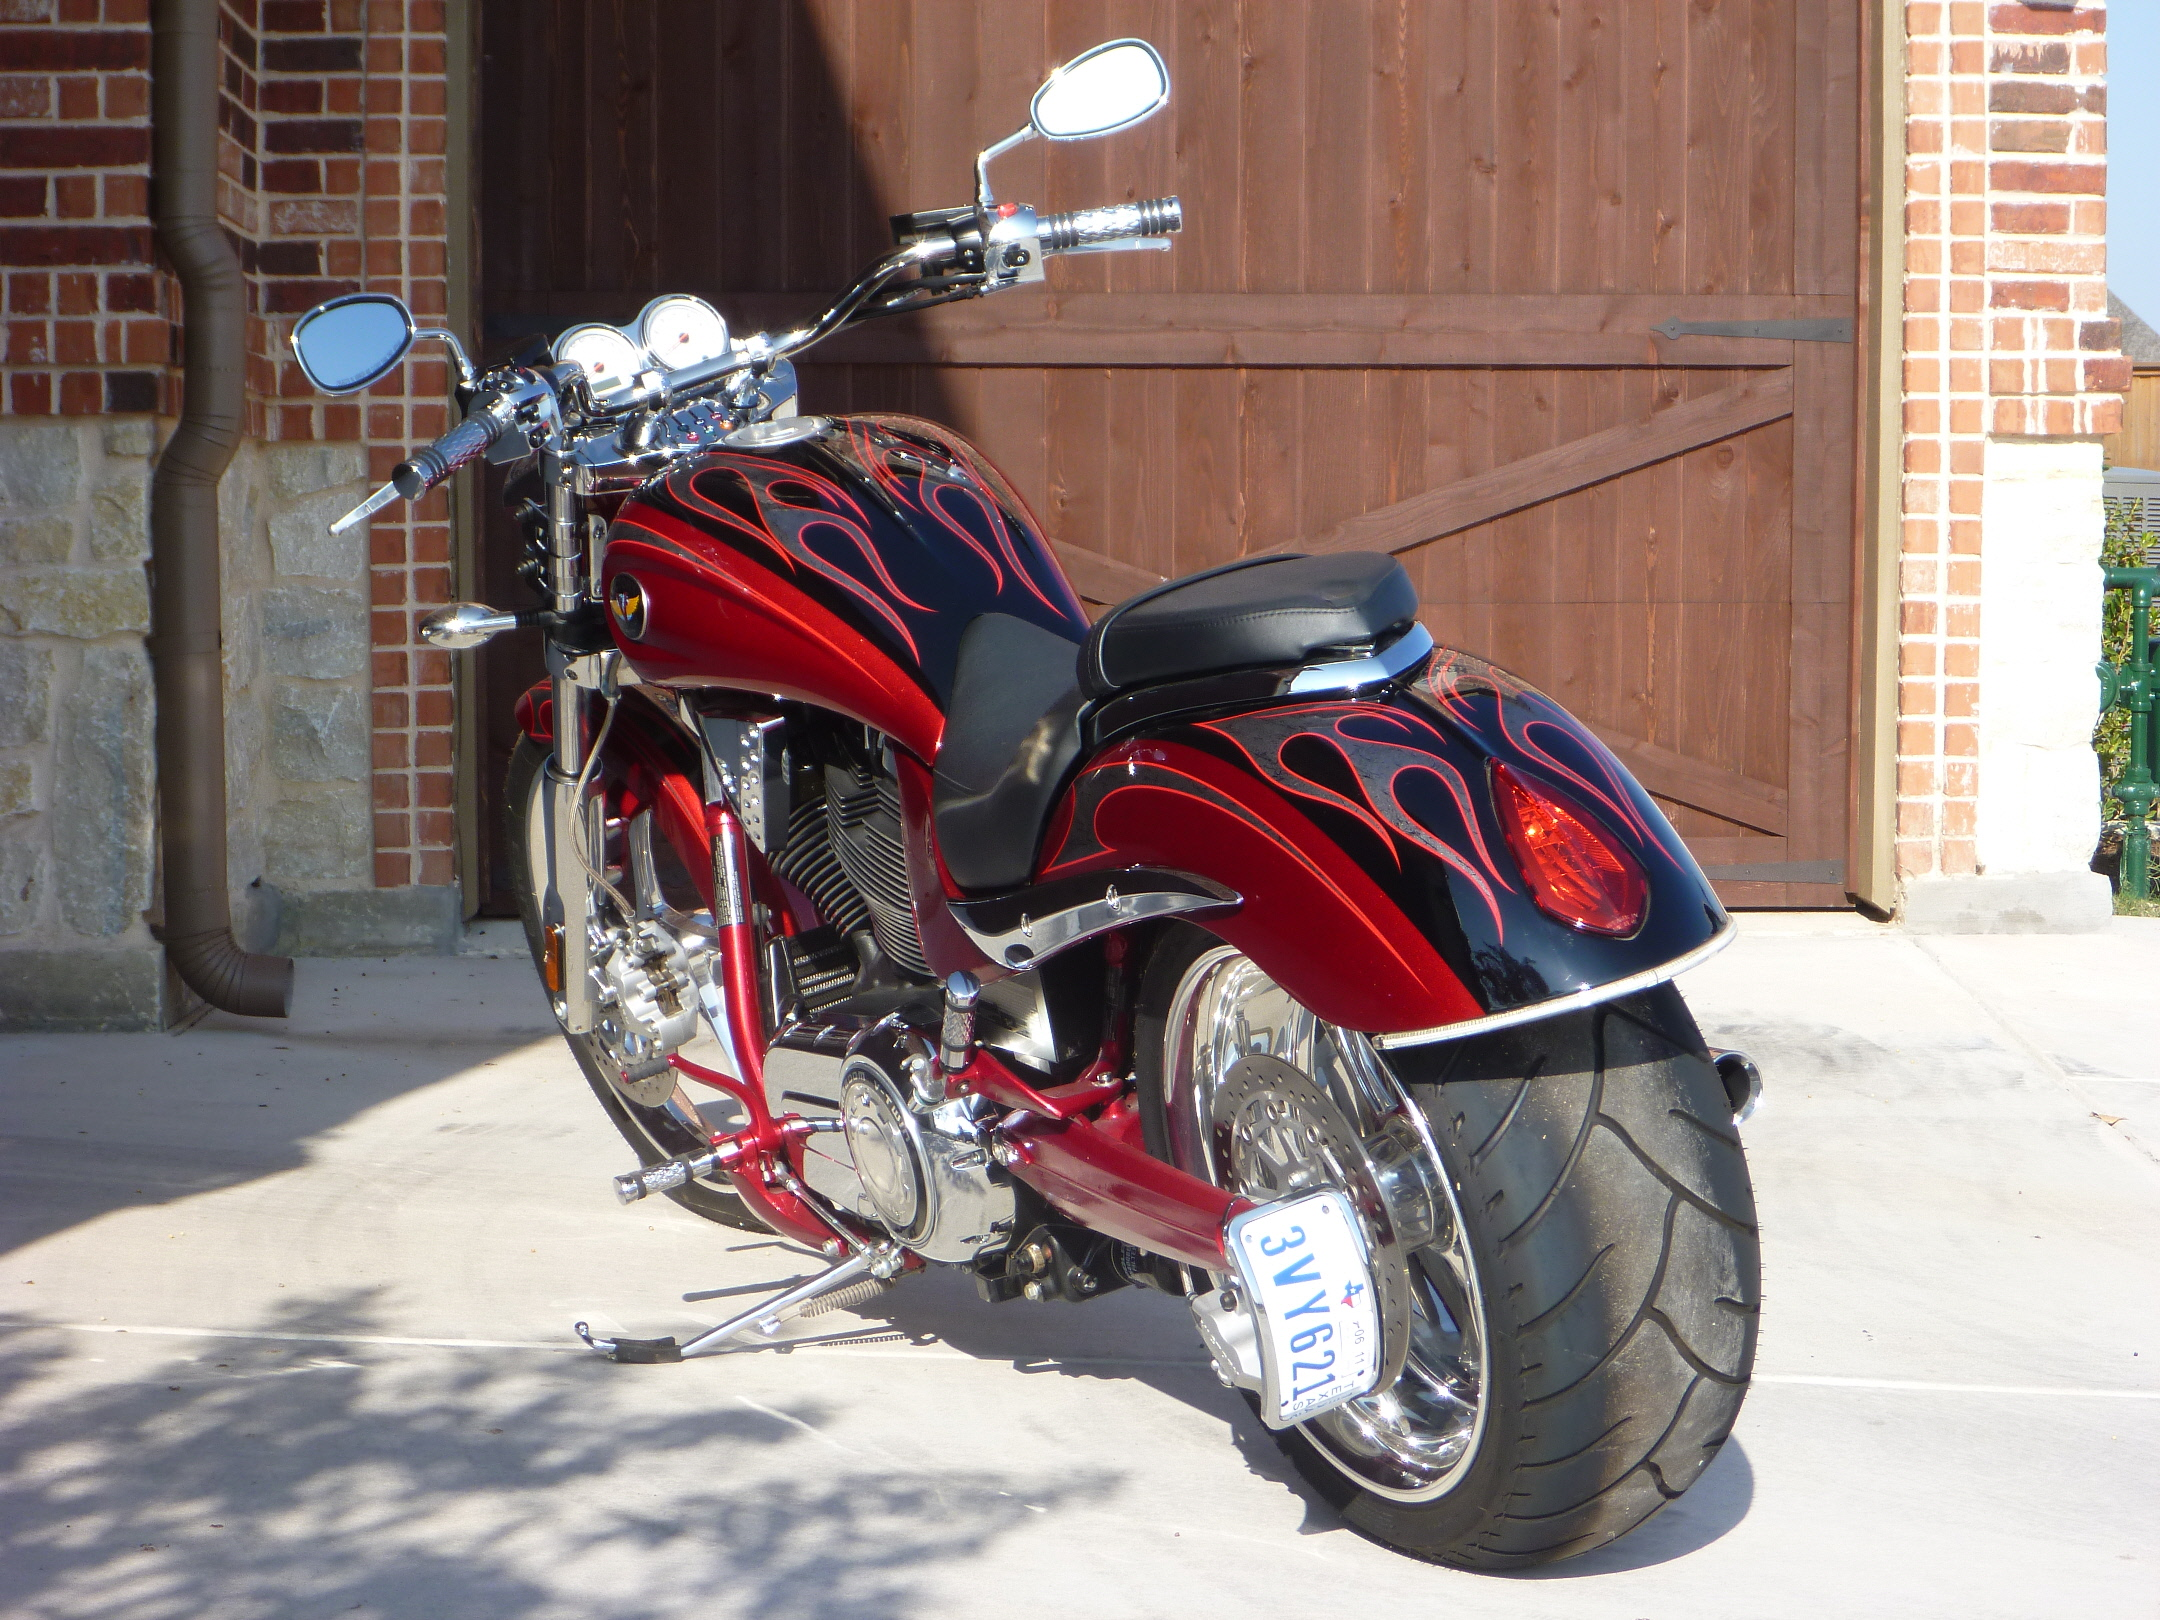 2008 Jackpot Premium - like NEW! - Victory Forums - Victory Motorcycle Forum